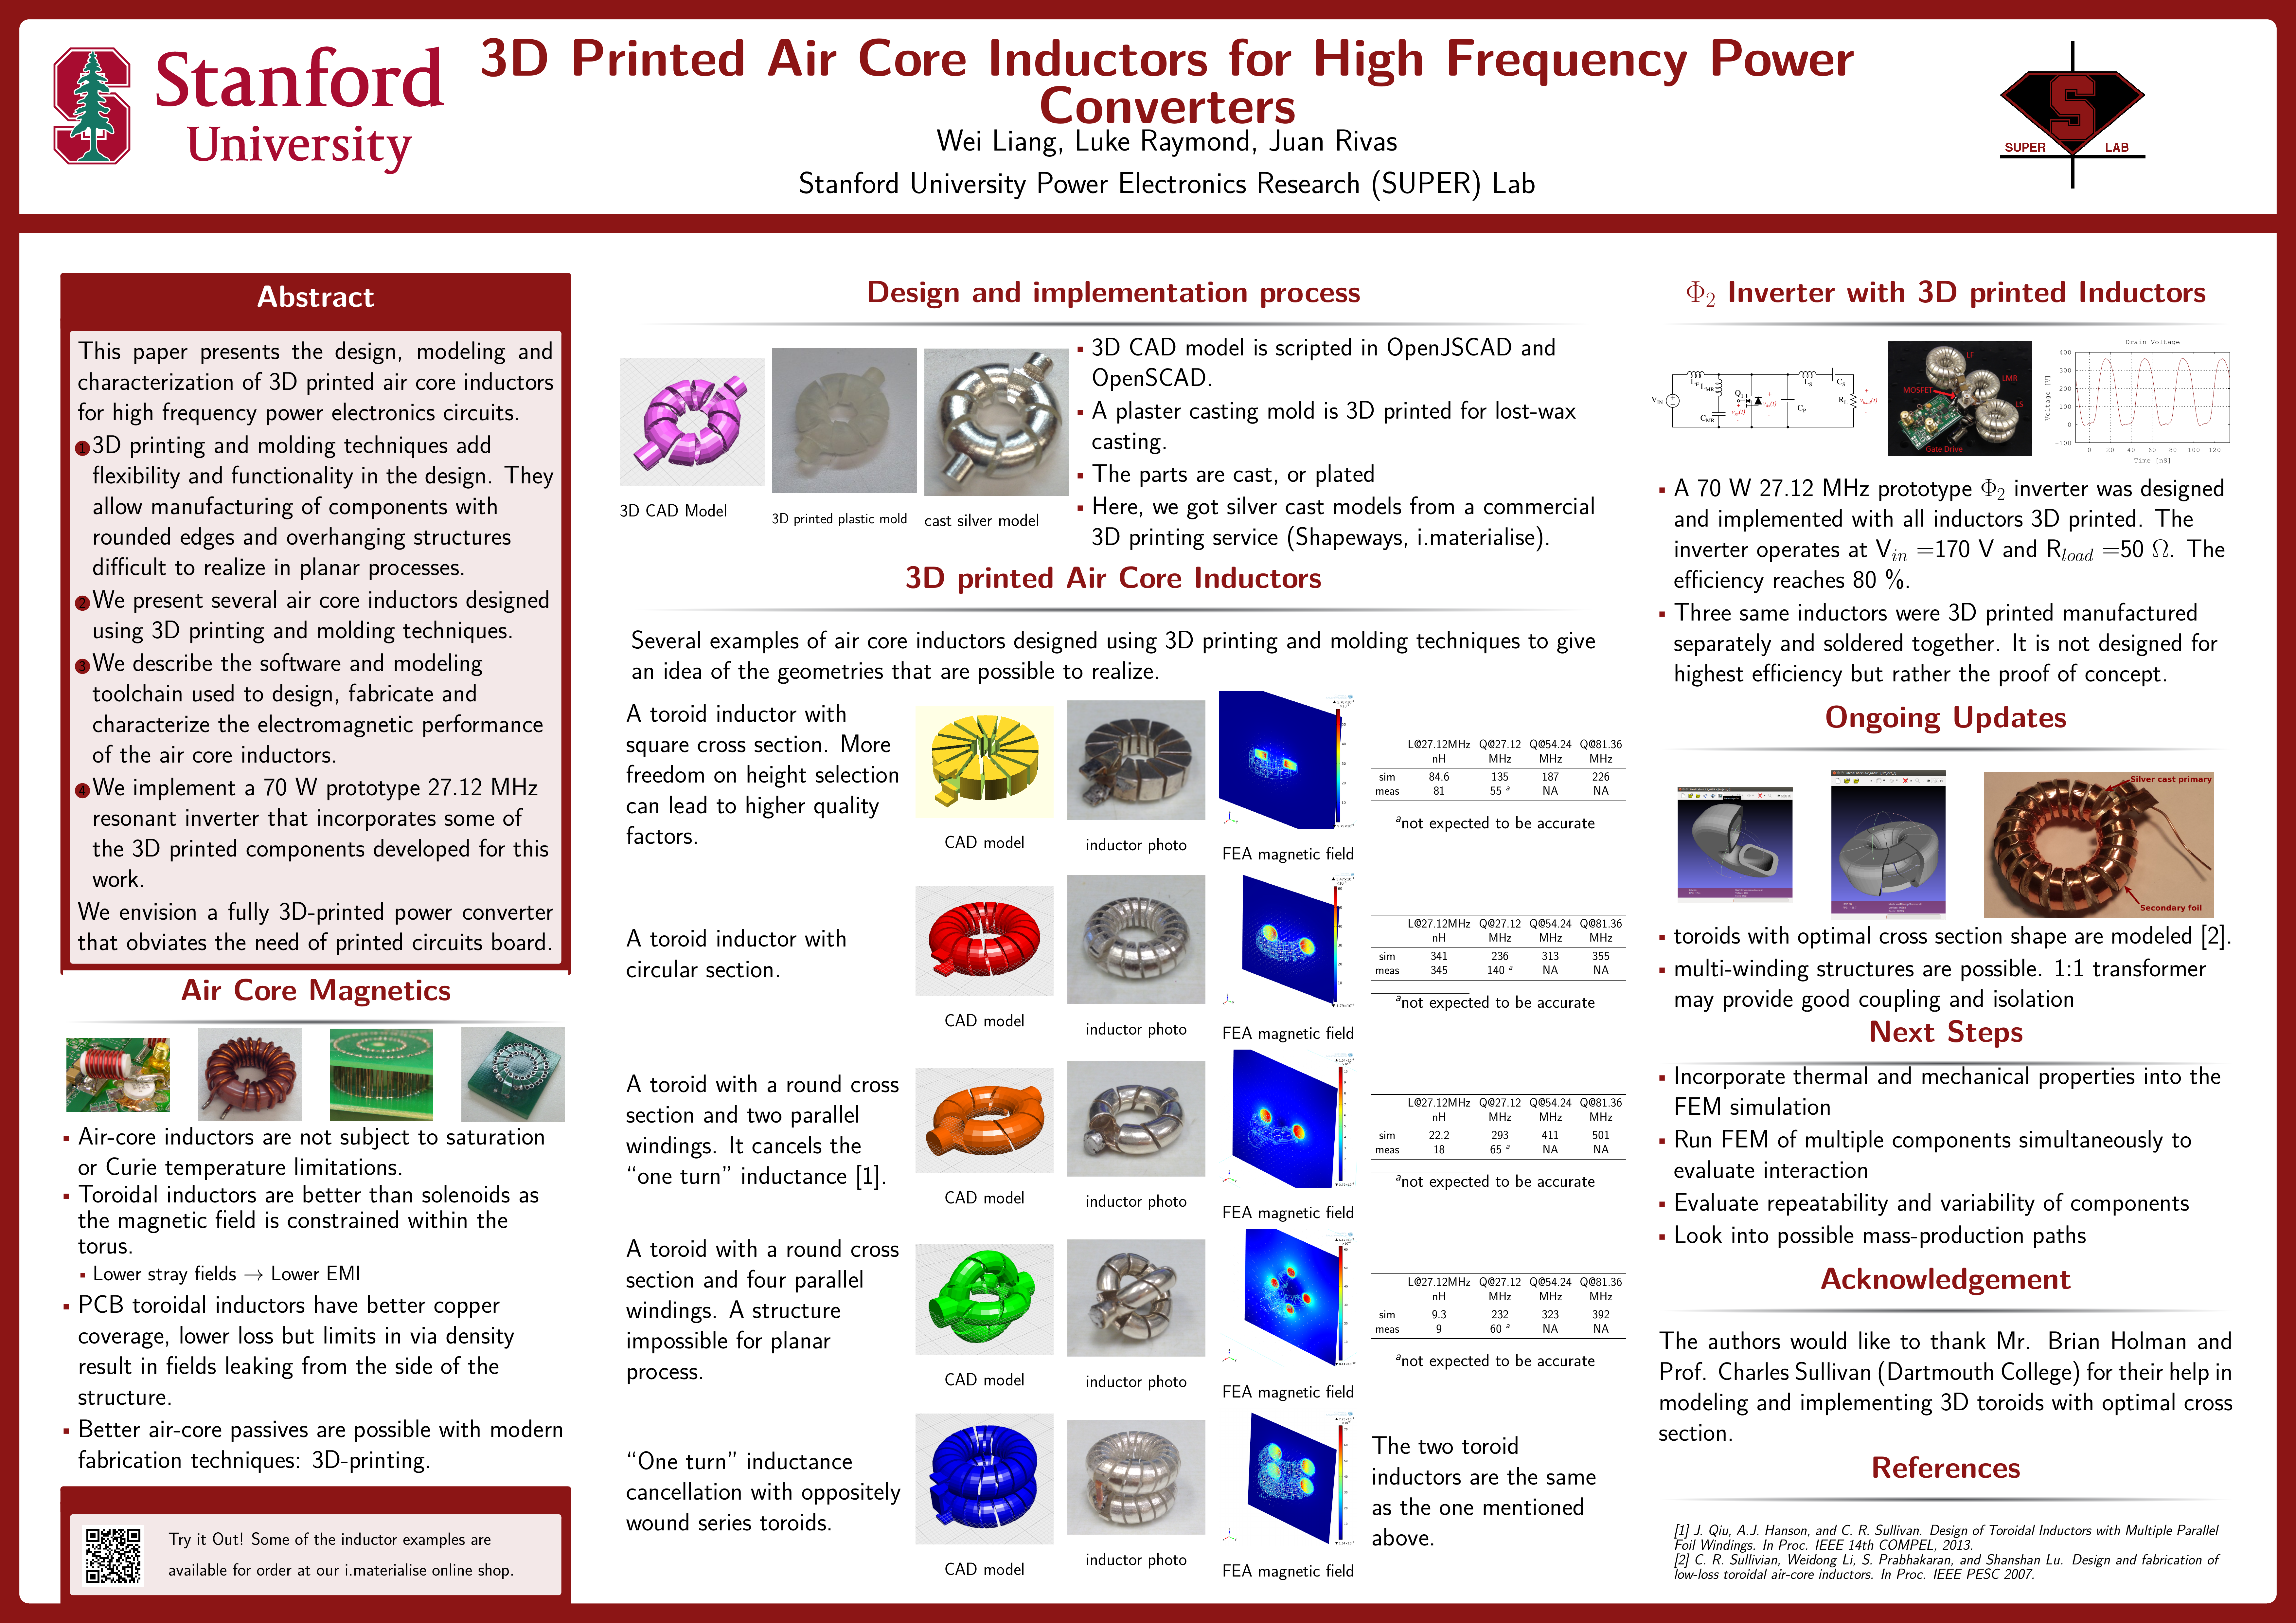 3D Printed Air Core Inductors for High Frequency Power